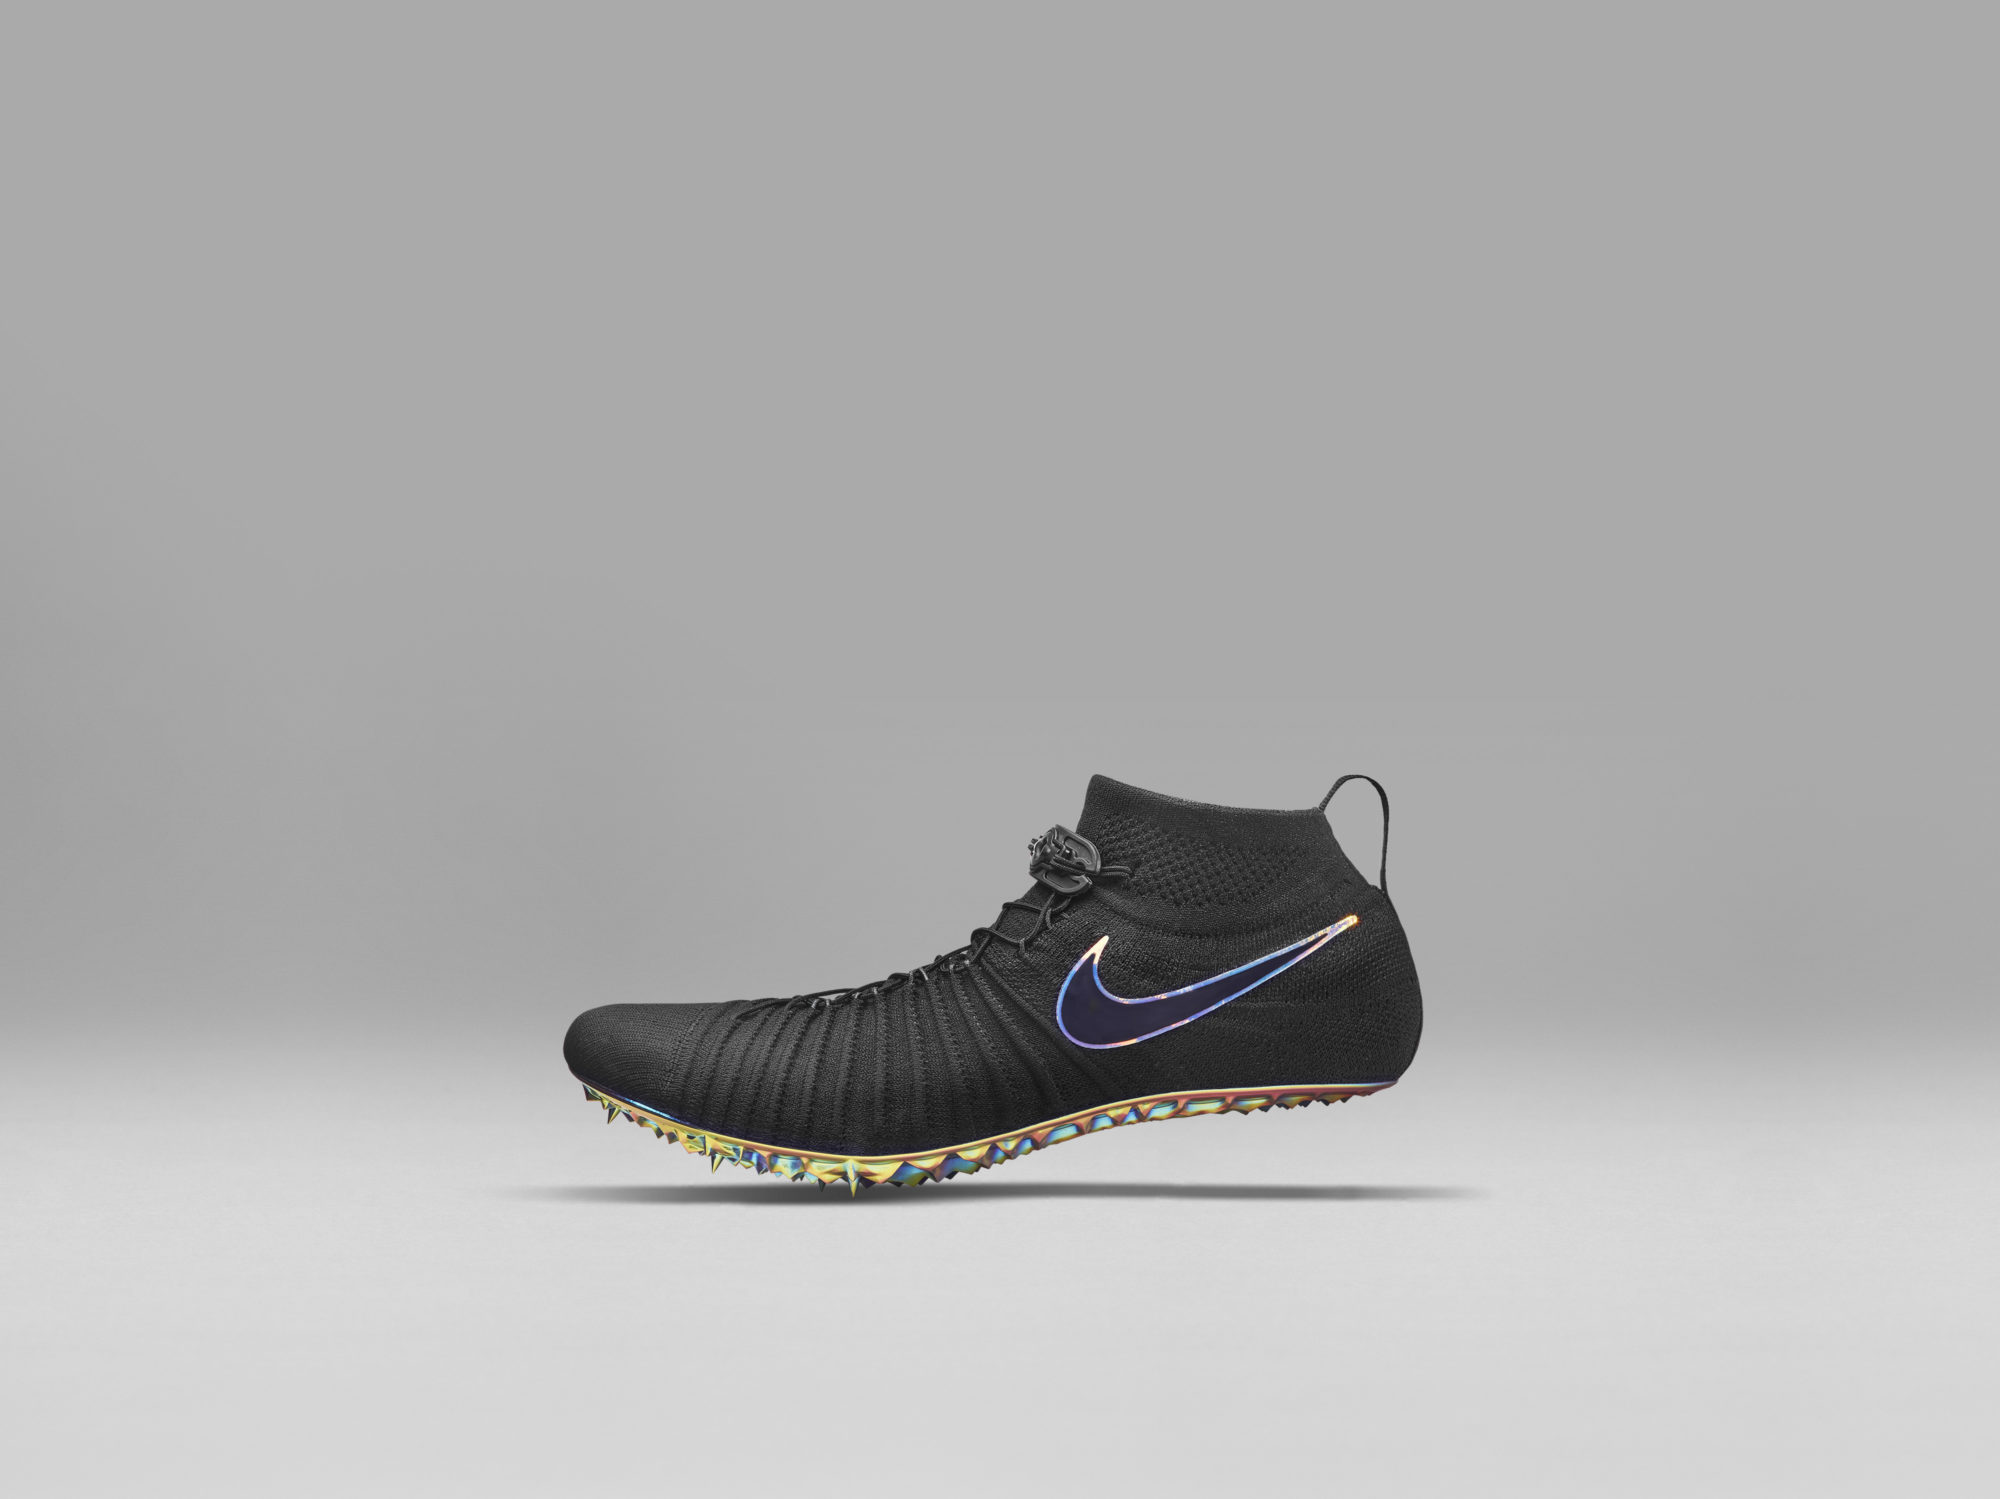 2dd41925ea1c The Nike Zoom Superfly Flyknit sprinting shoe. (Photo  Courtesy Nike) …